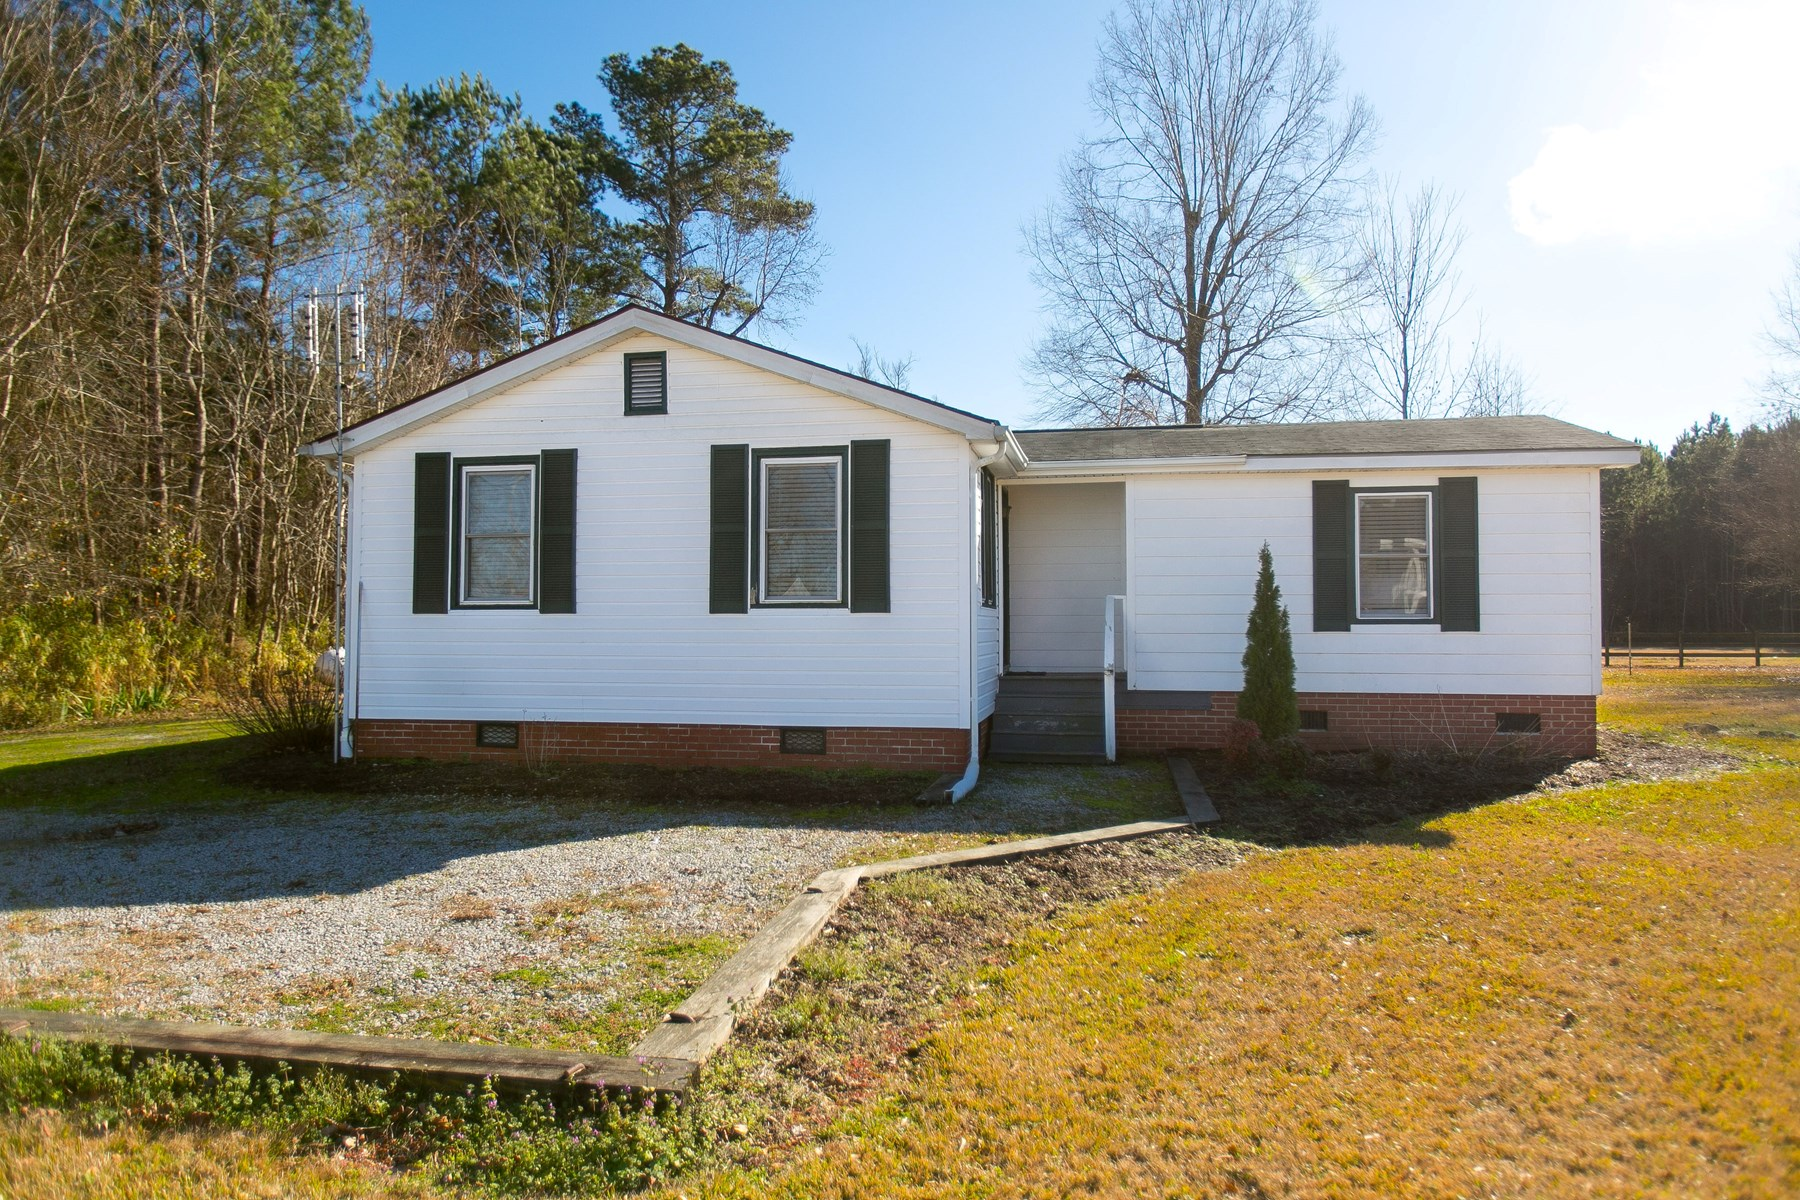 EDENTON, NC BUNGALOW LOCATED CLOSE TO DOWNTOWN